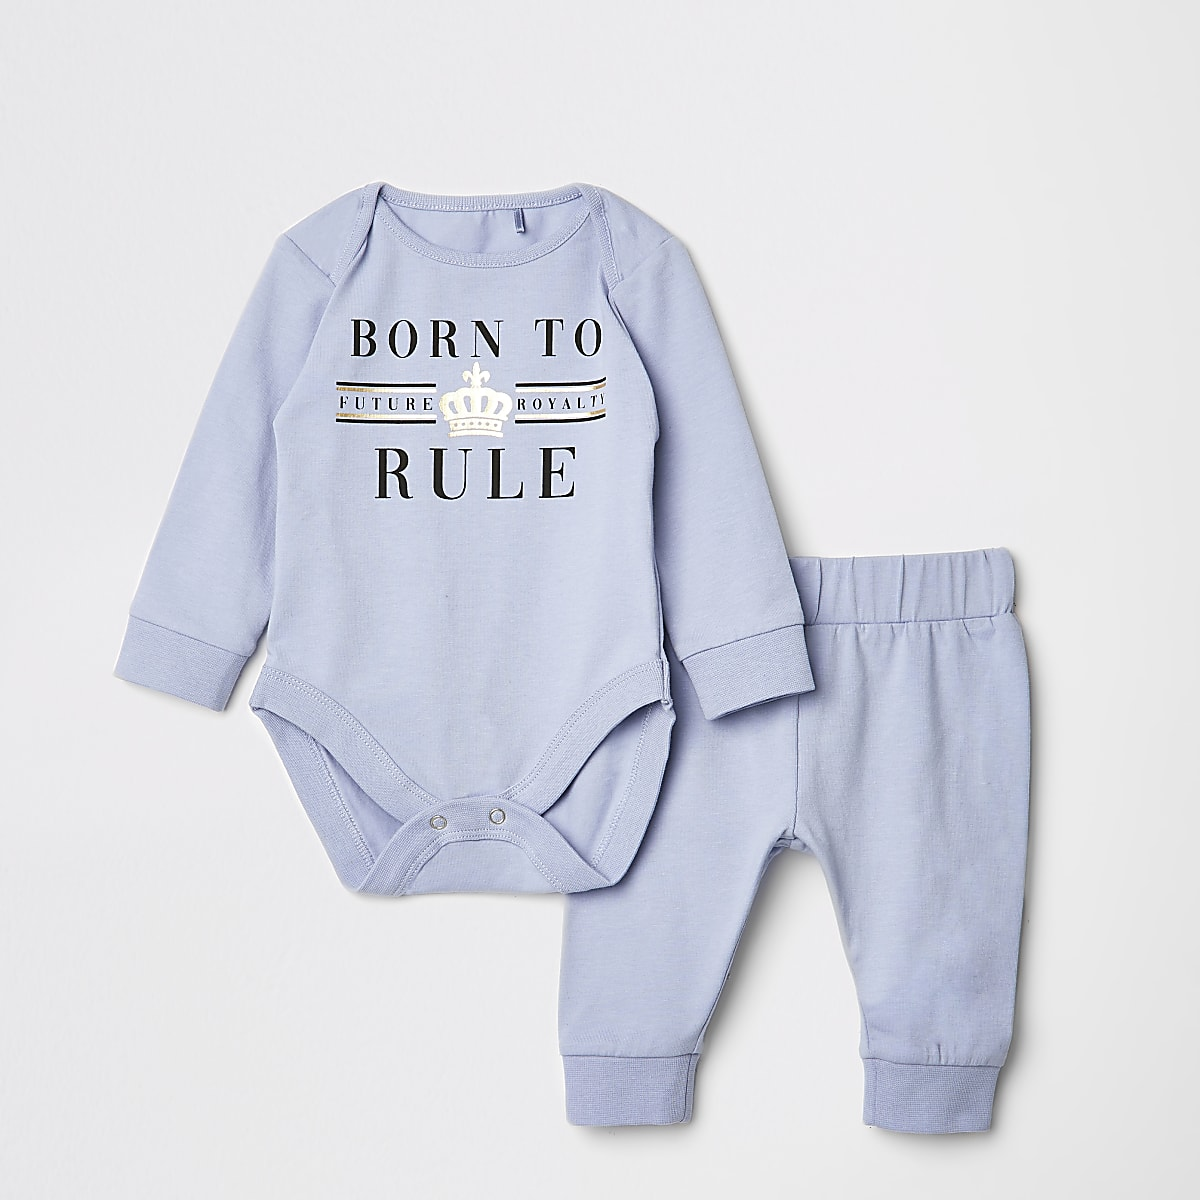 Baby blue 'Born to rule' baby grow